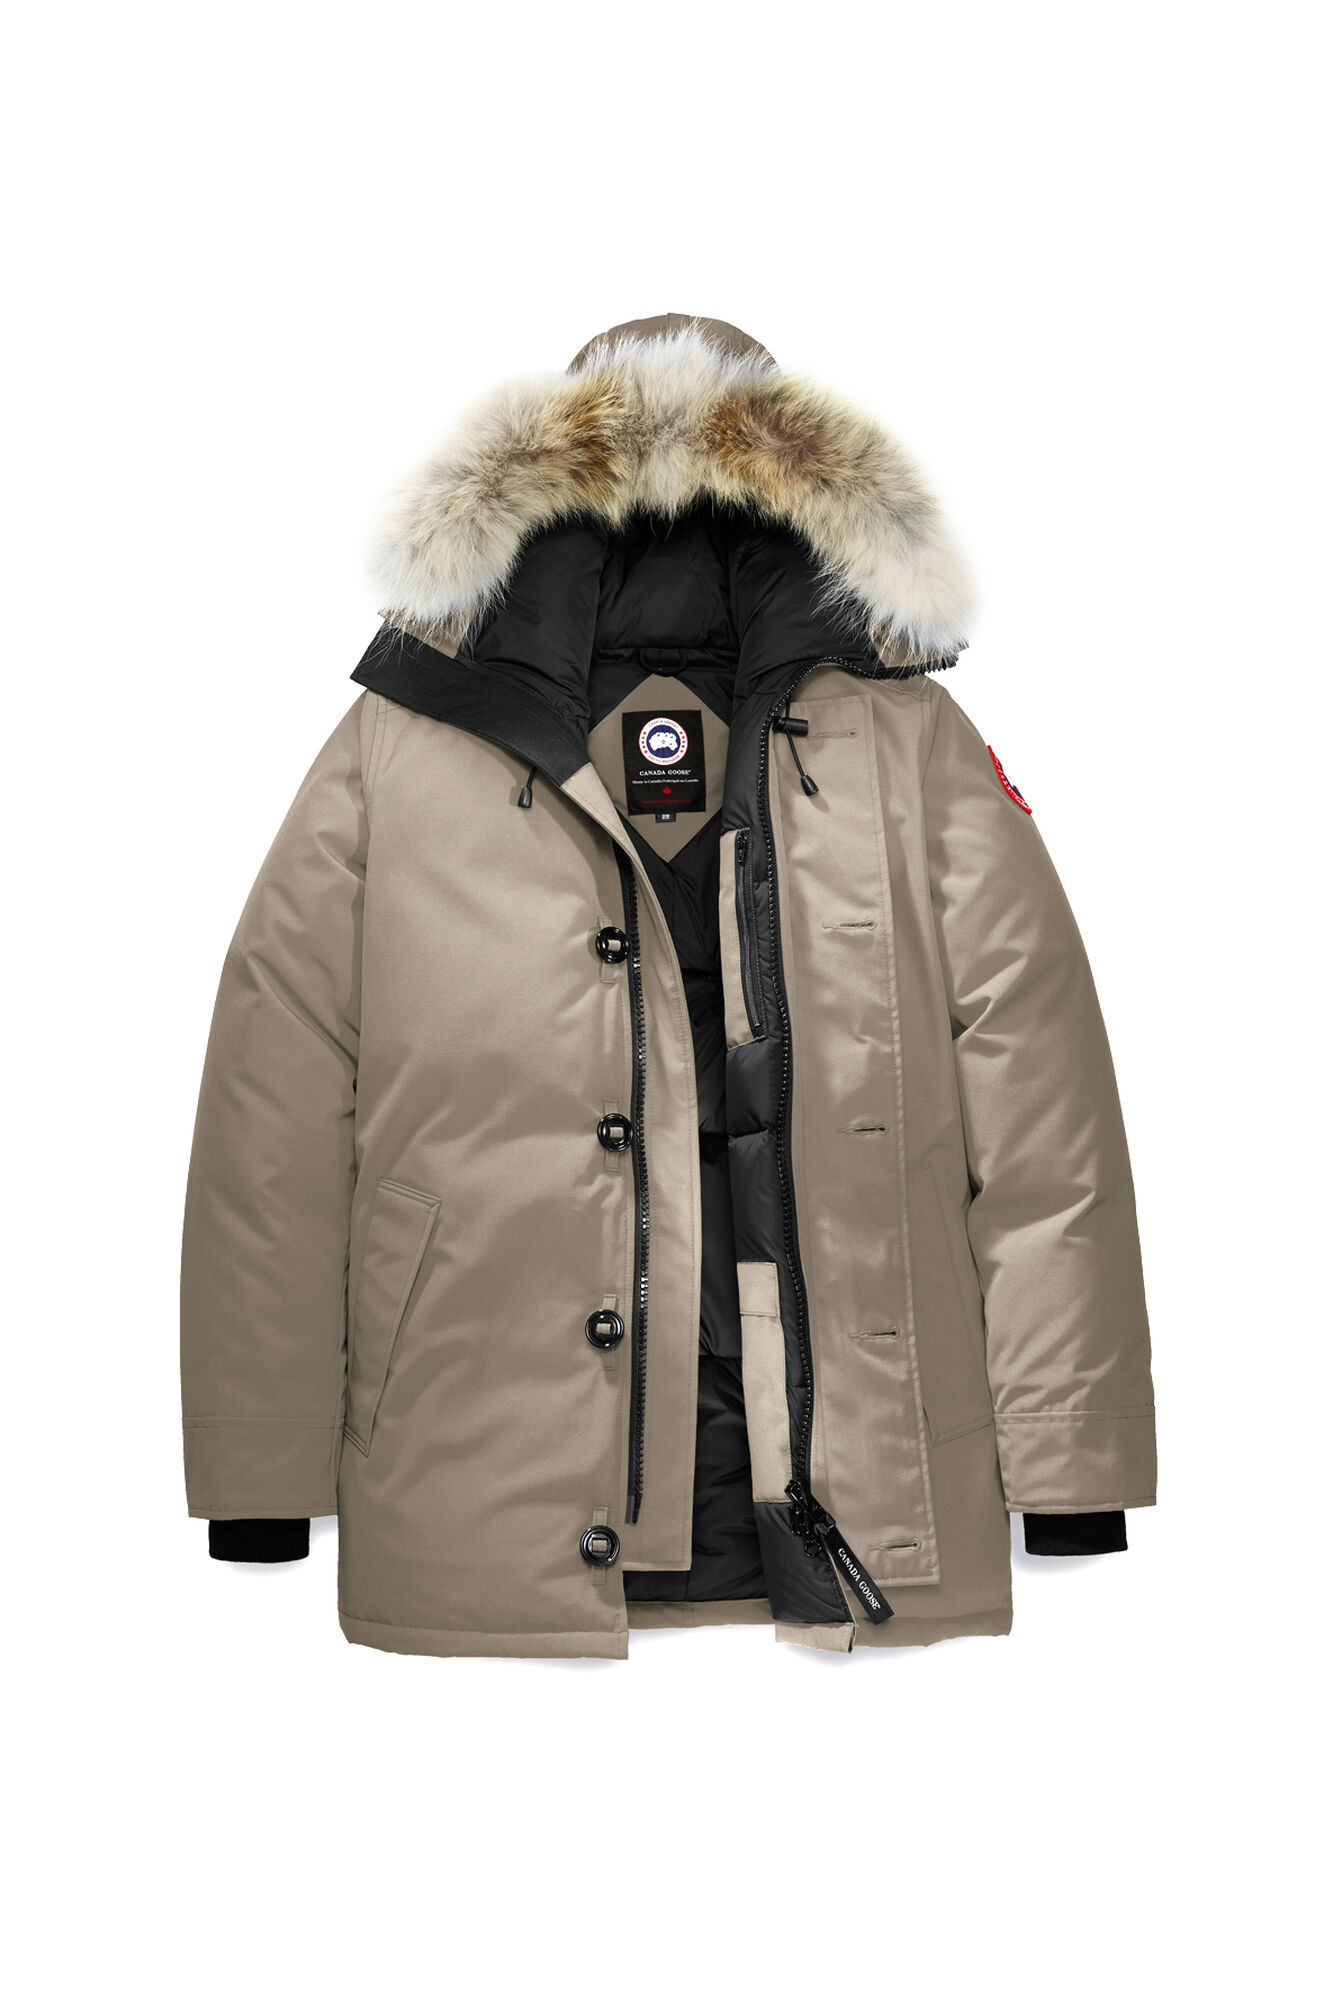 Canada Goose womens replica authentic - Men's Arctic Program Chateau Parka | Canada Goose?